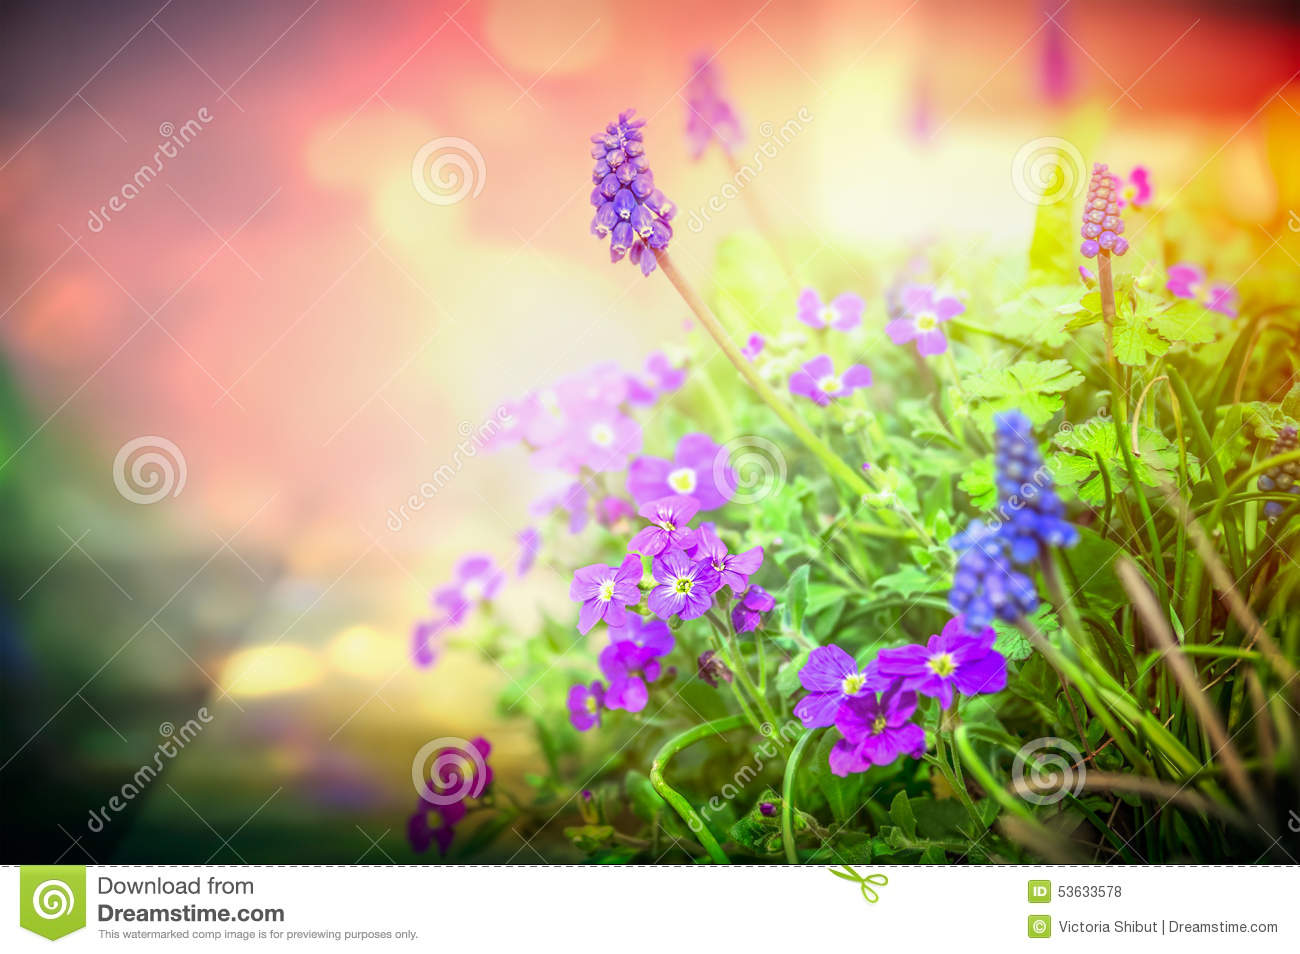 Garden Flowers purple garden flowers in back light on blurred nature background